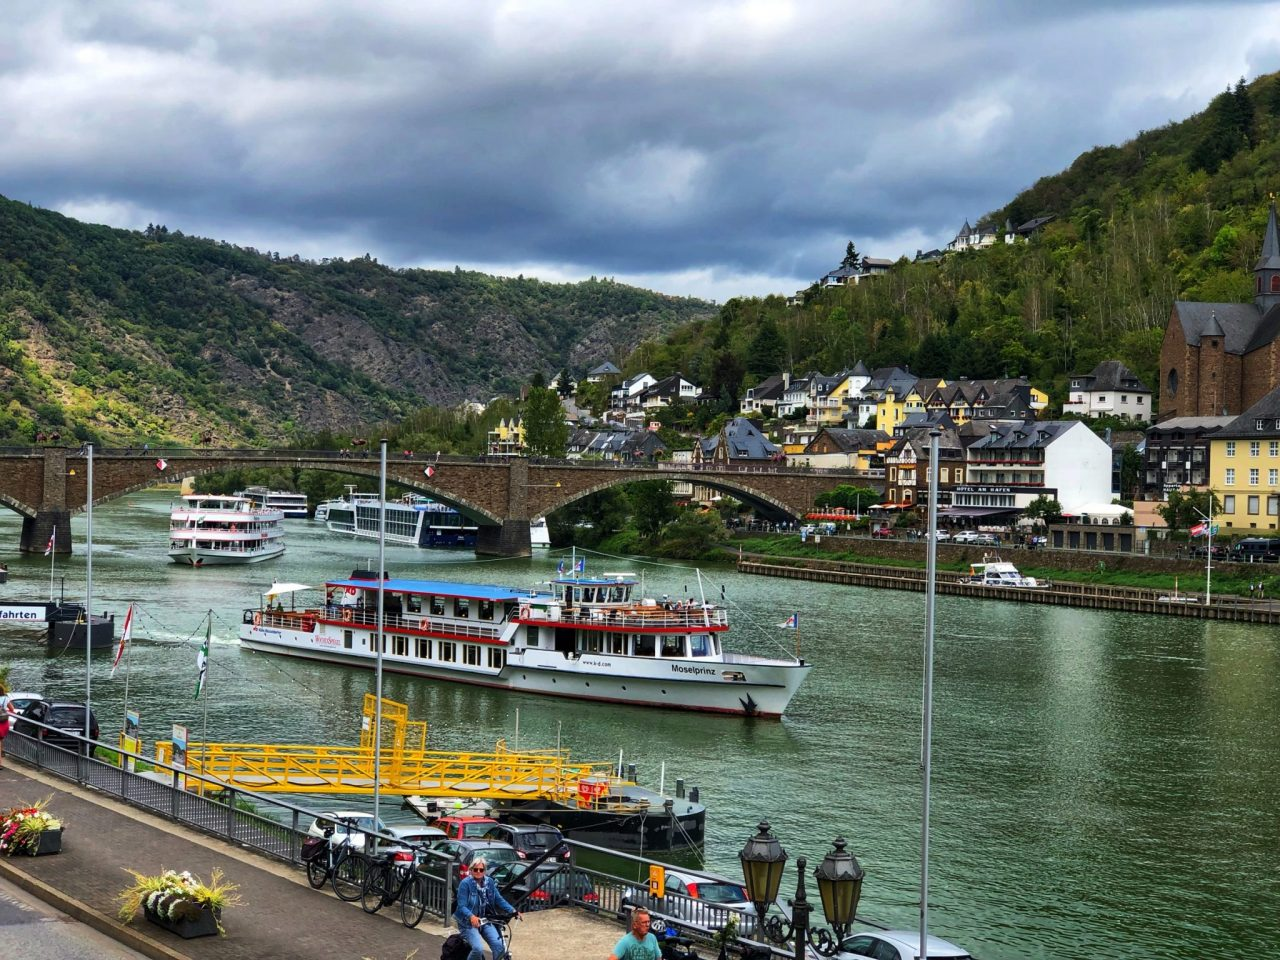 Cochem Mosel Promenade, view to the boats